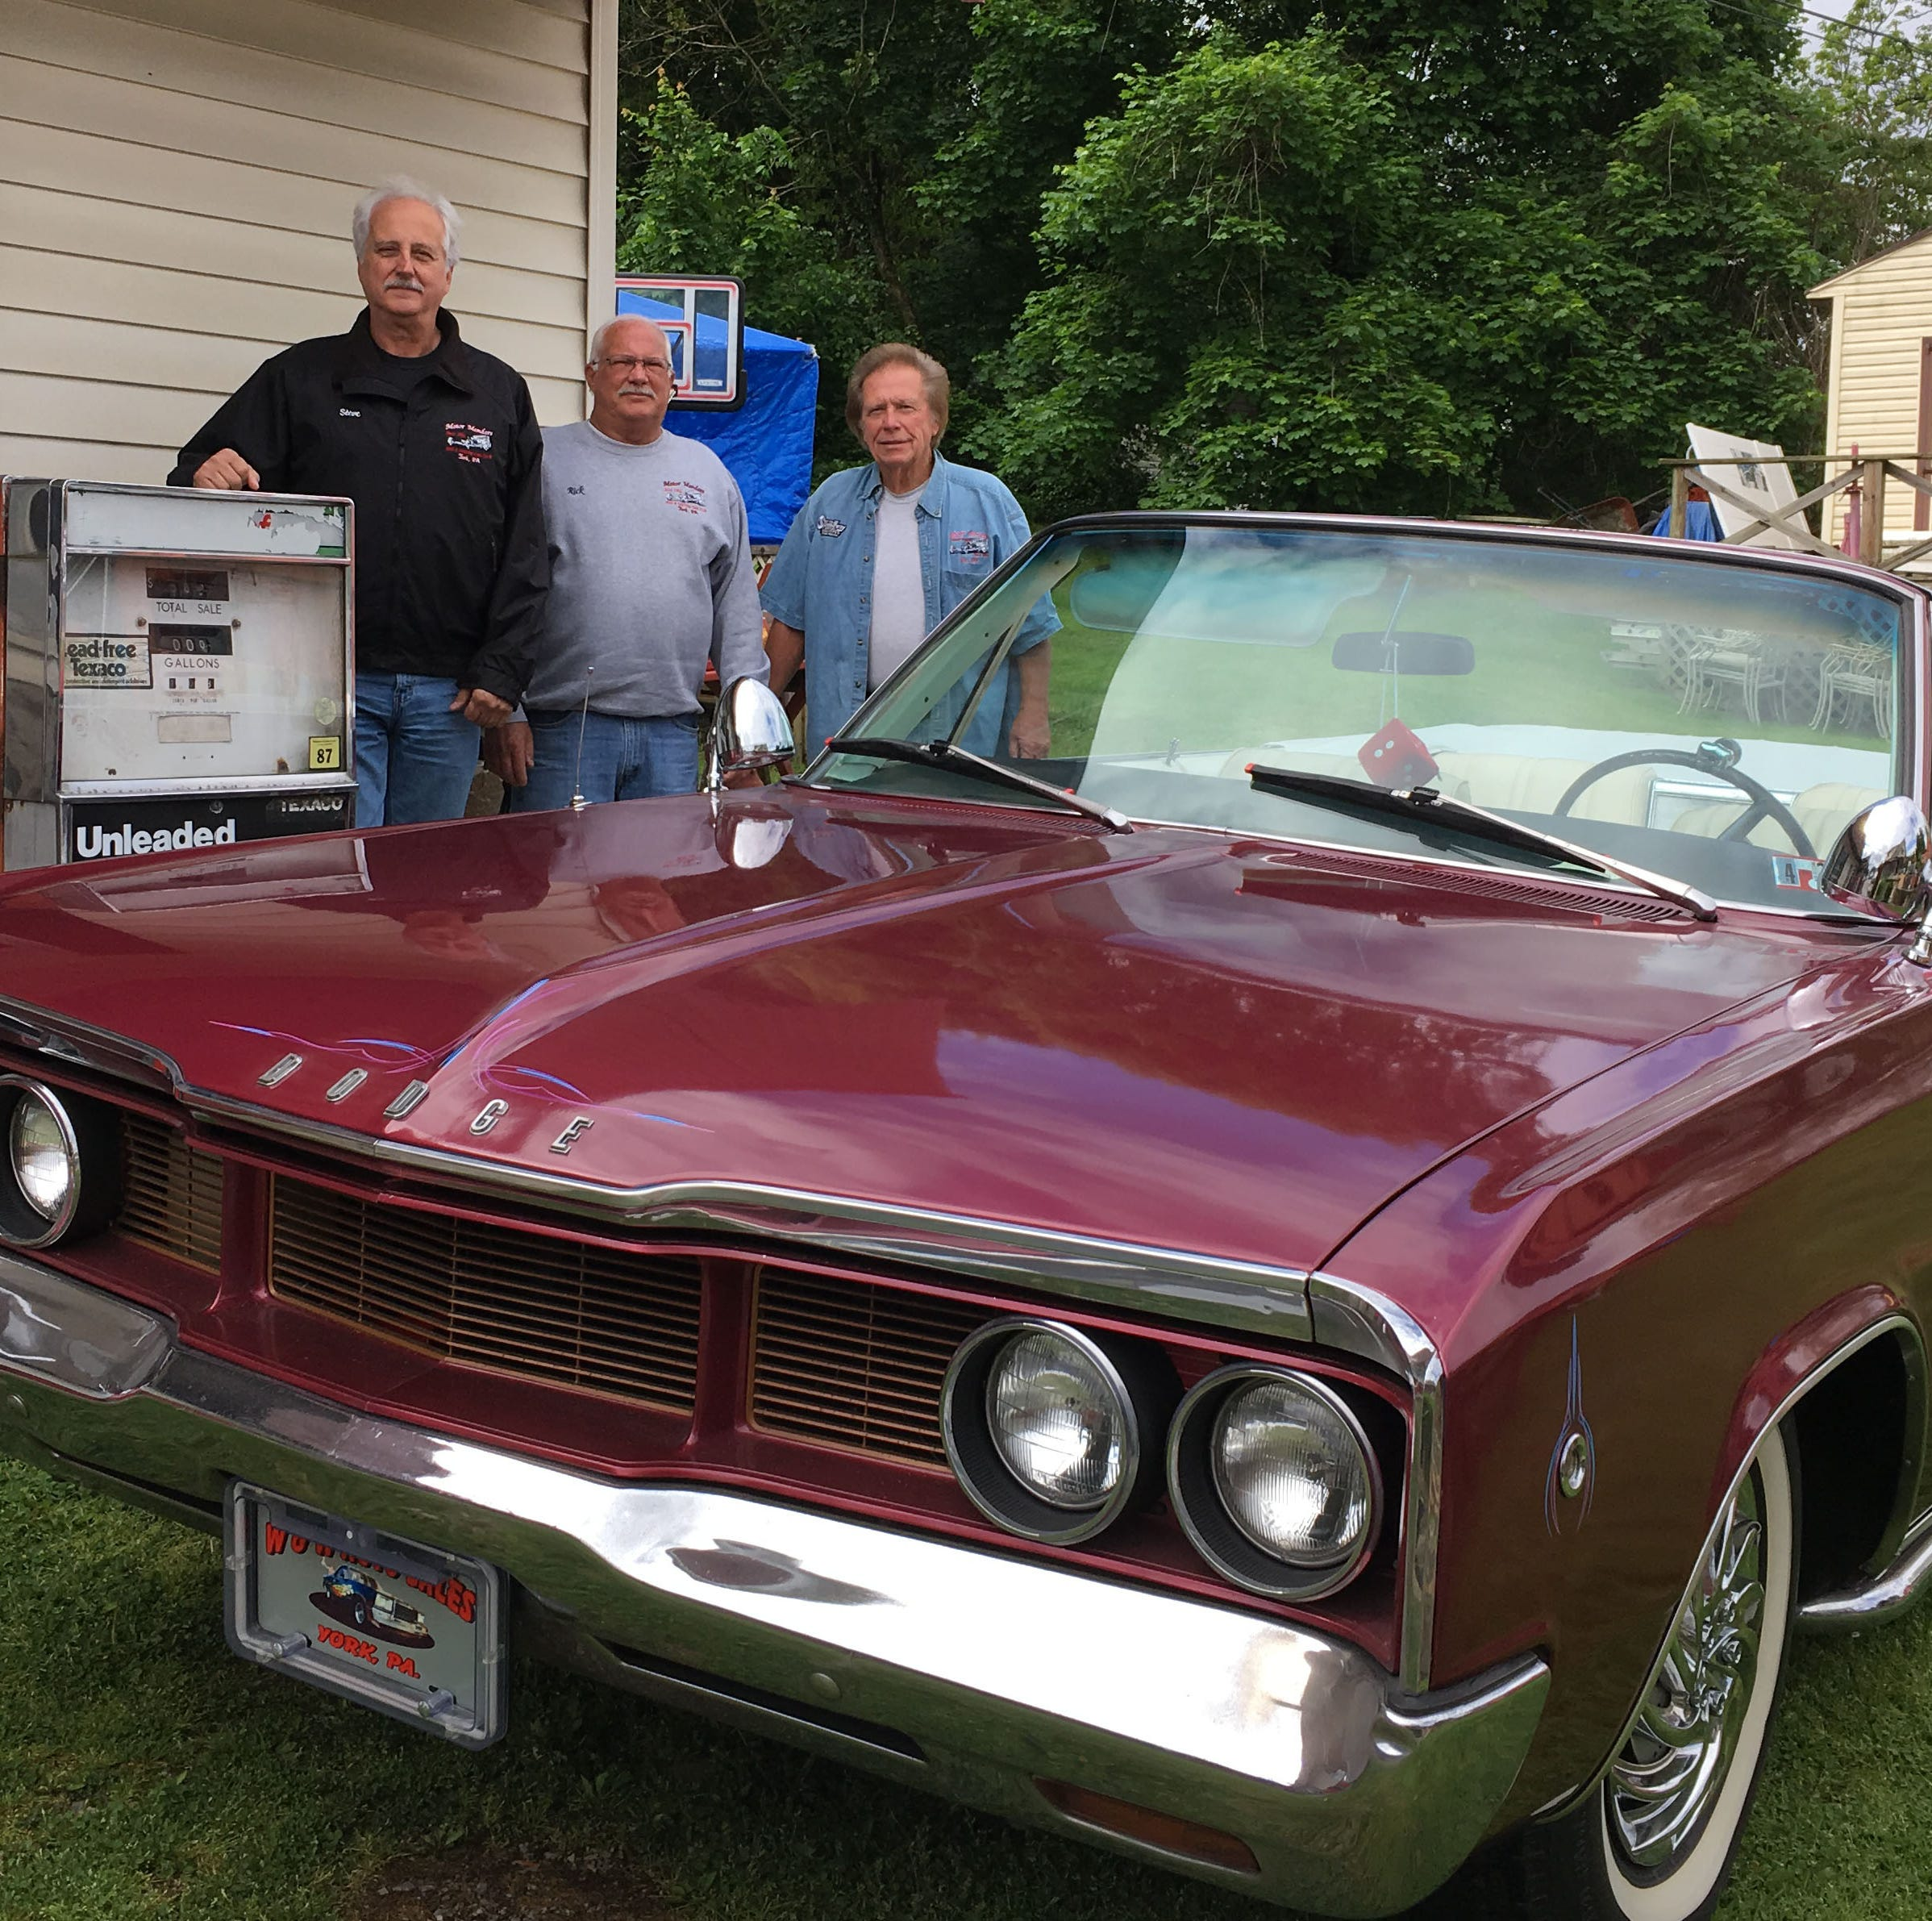 Rod & custom car club driven to help others